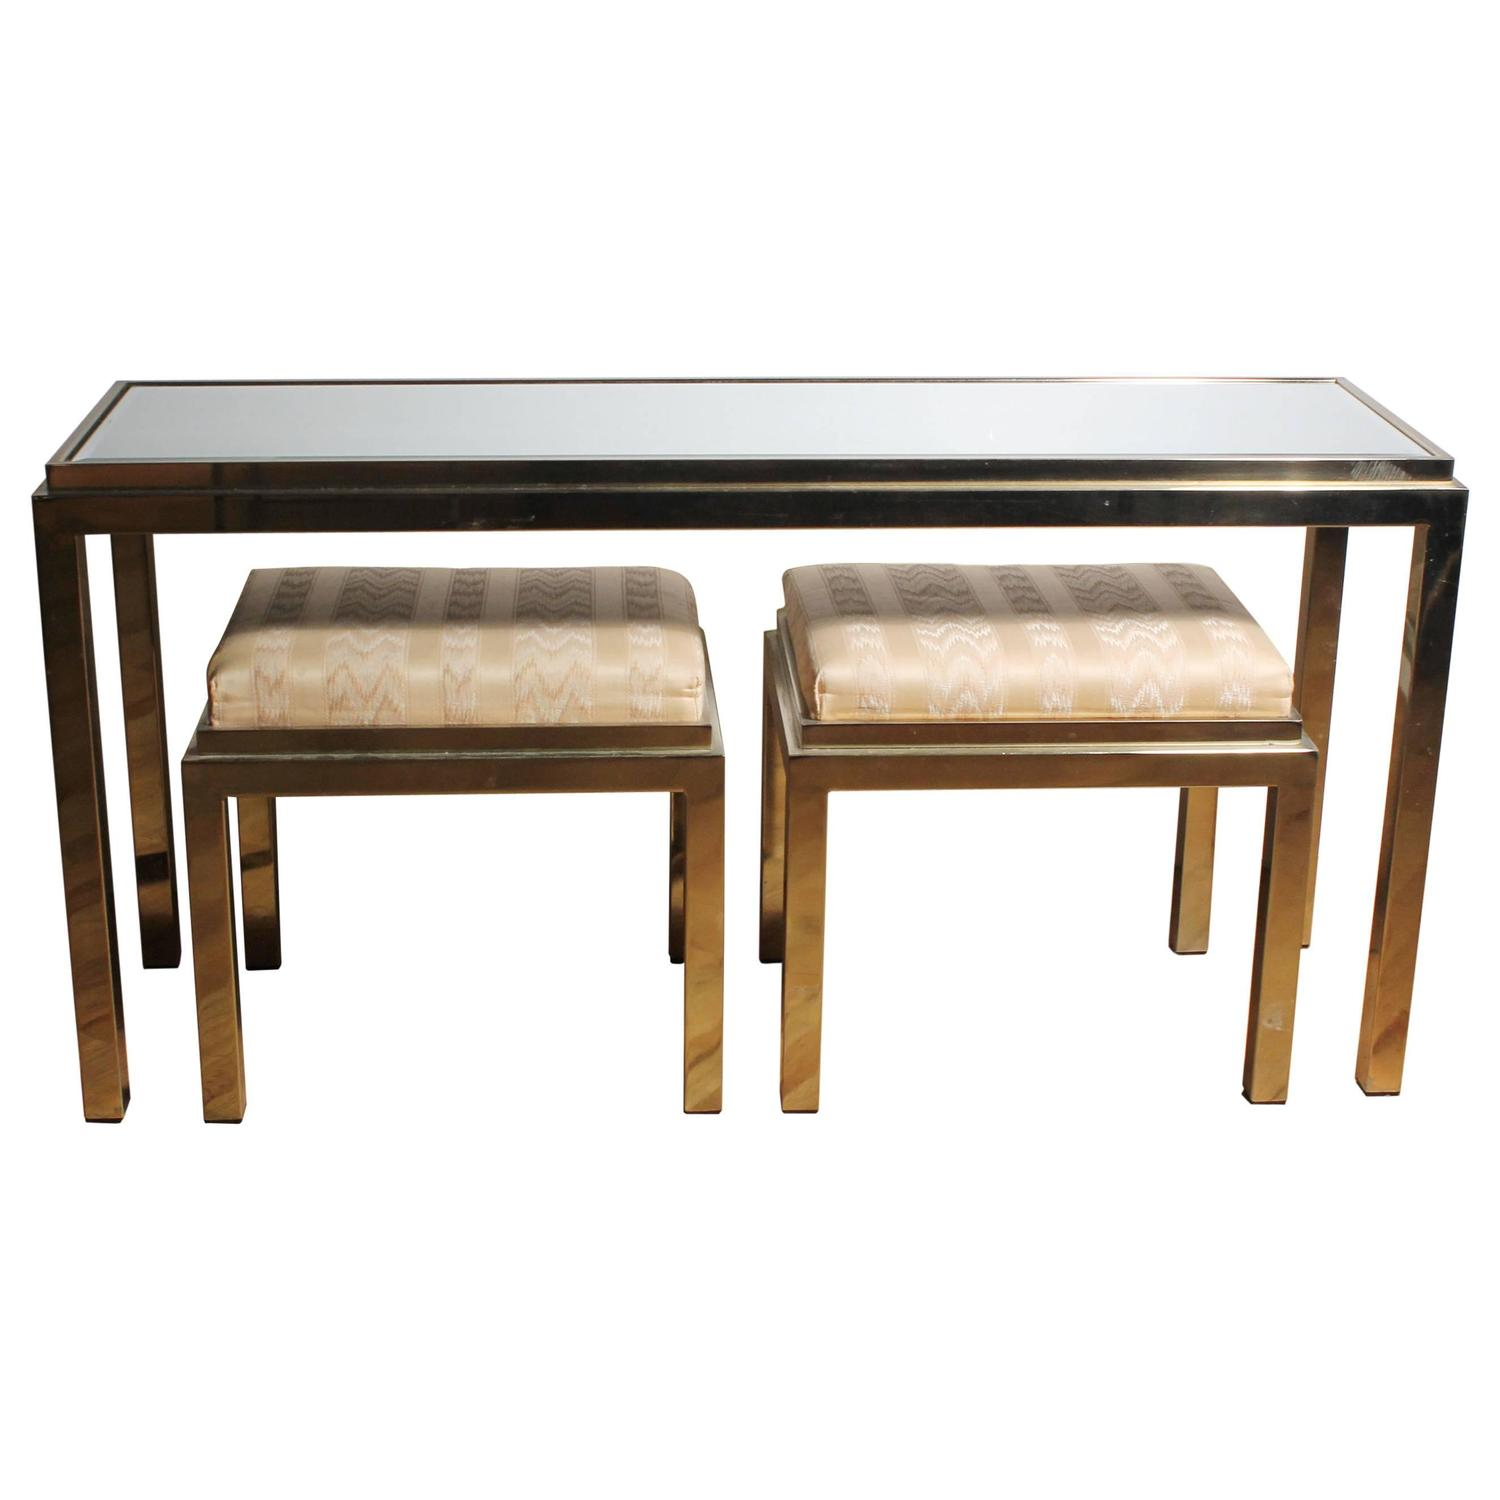 Console Table With Stools ~ Brass console sofa table with matching stools in style of